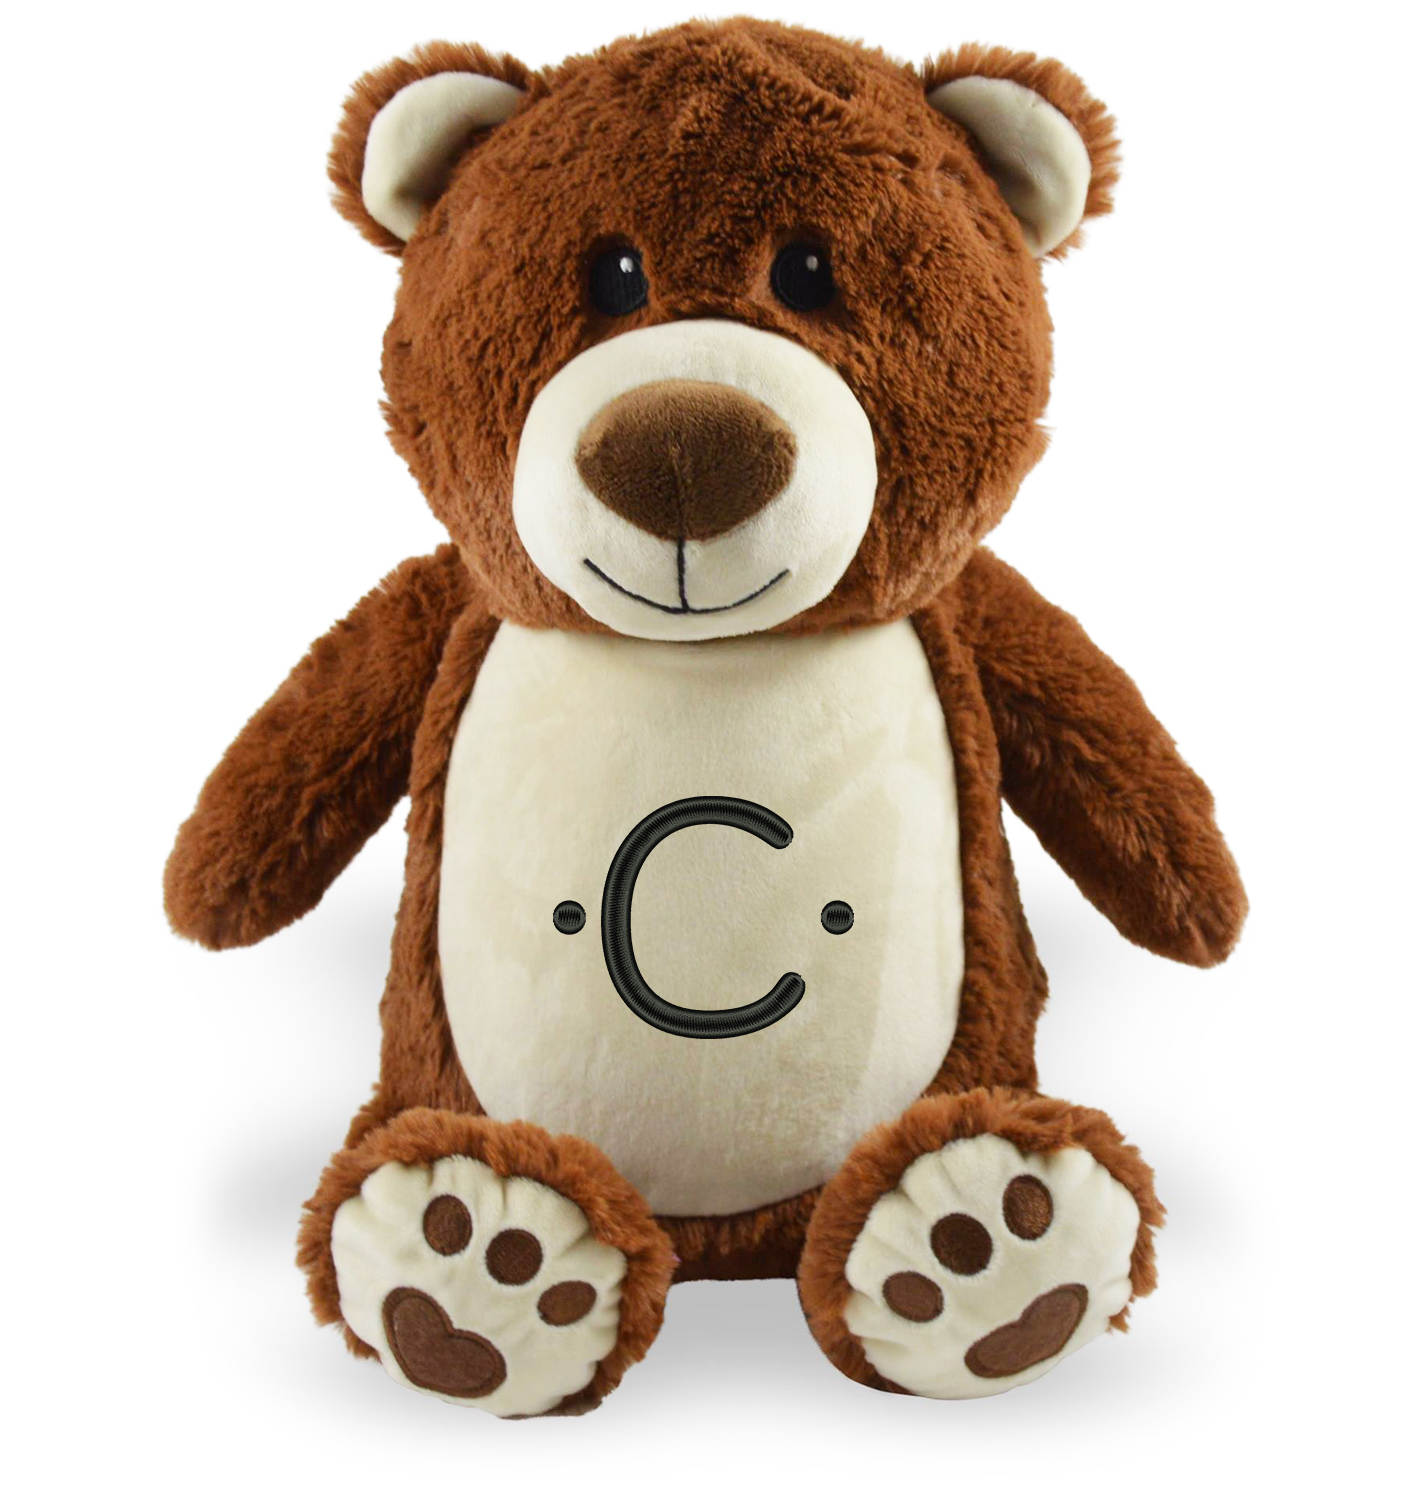 Plush Personalised Teddy Bear FREE Embroidered lettering PREMIUM Soft